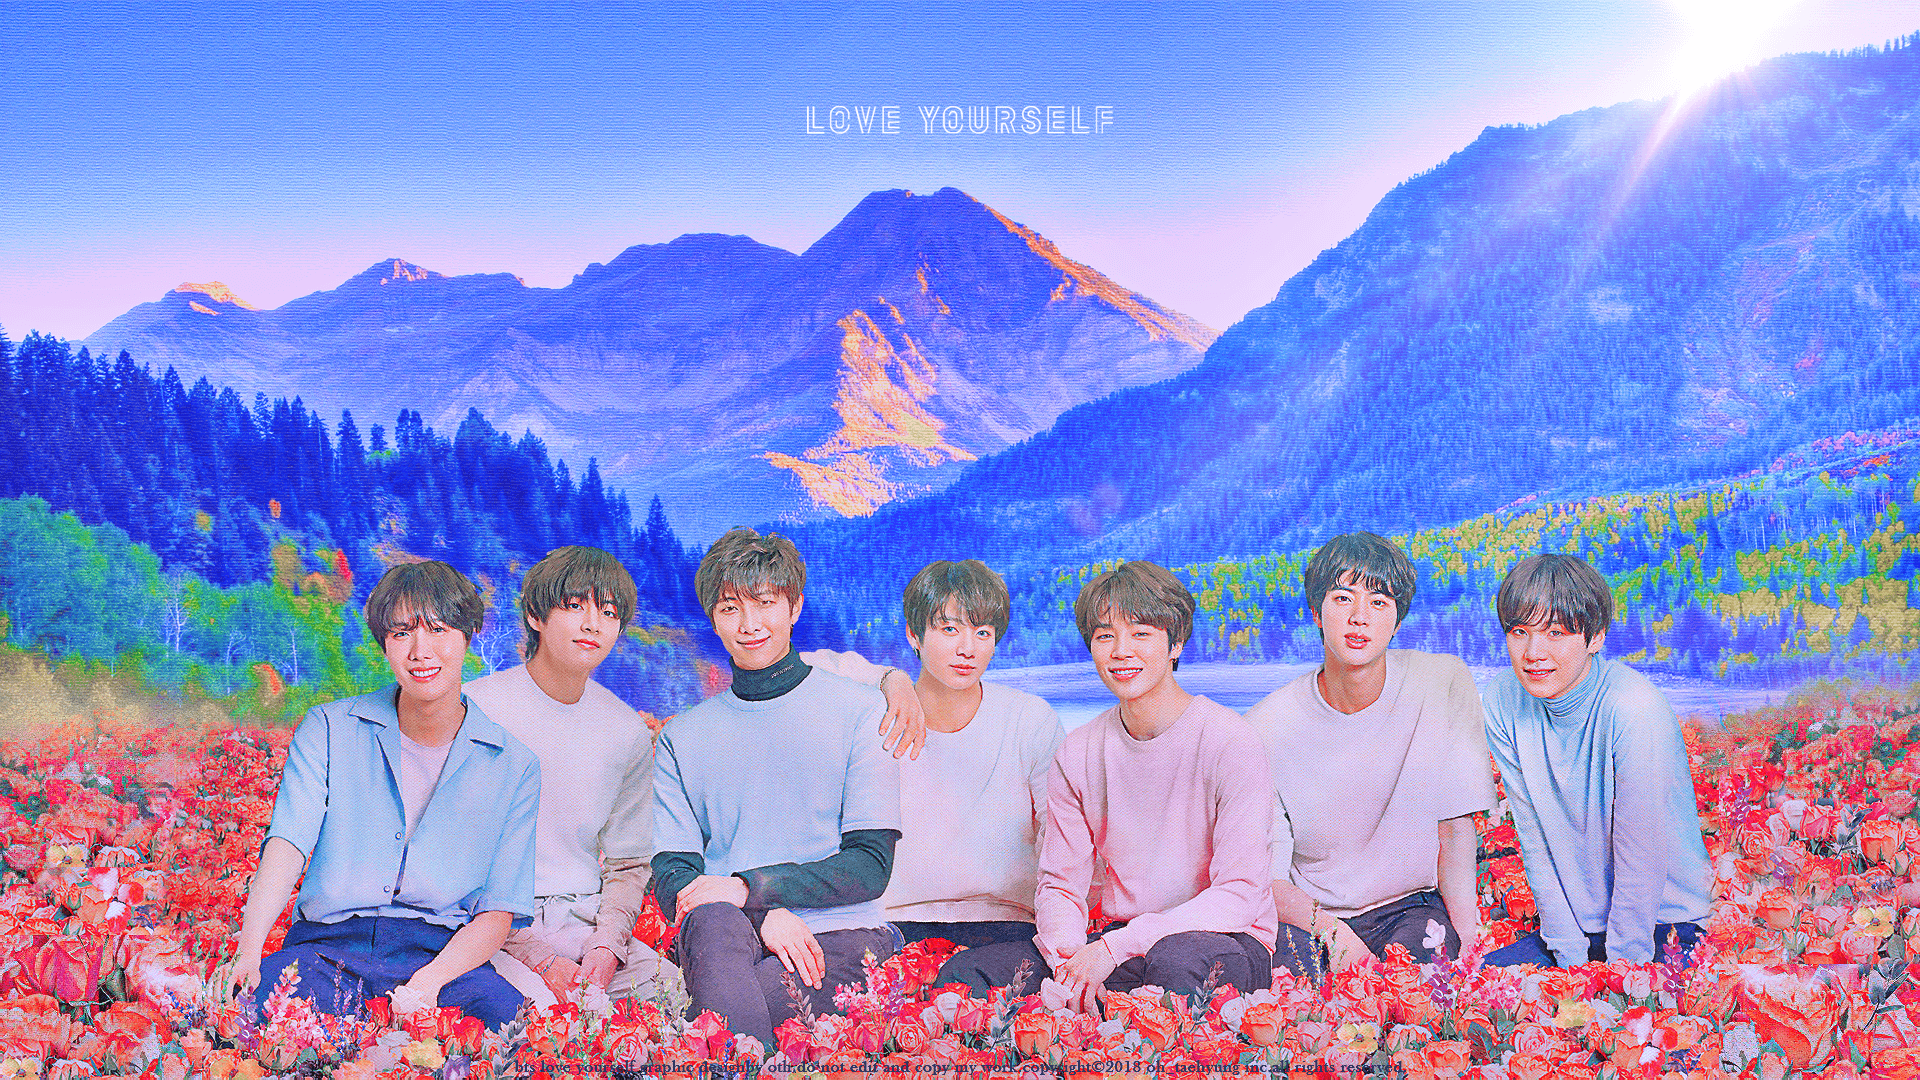 Bts Desktop Wallpaper Korean Idol